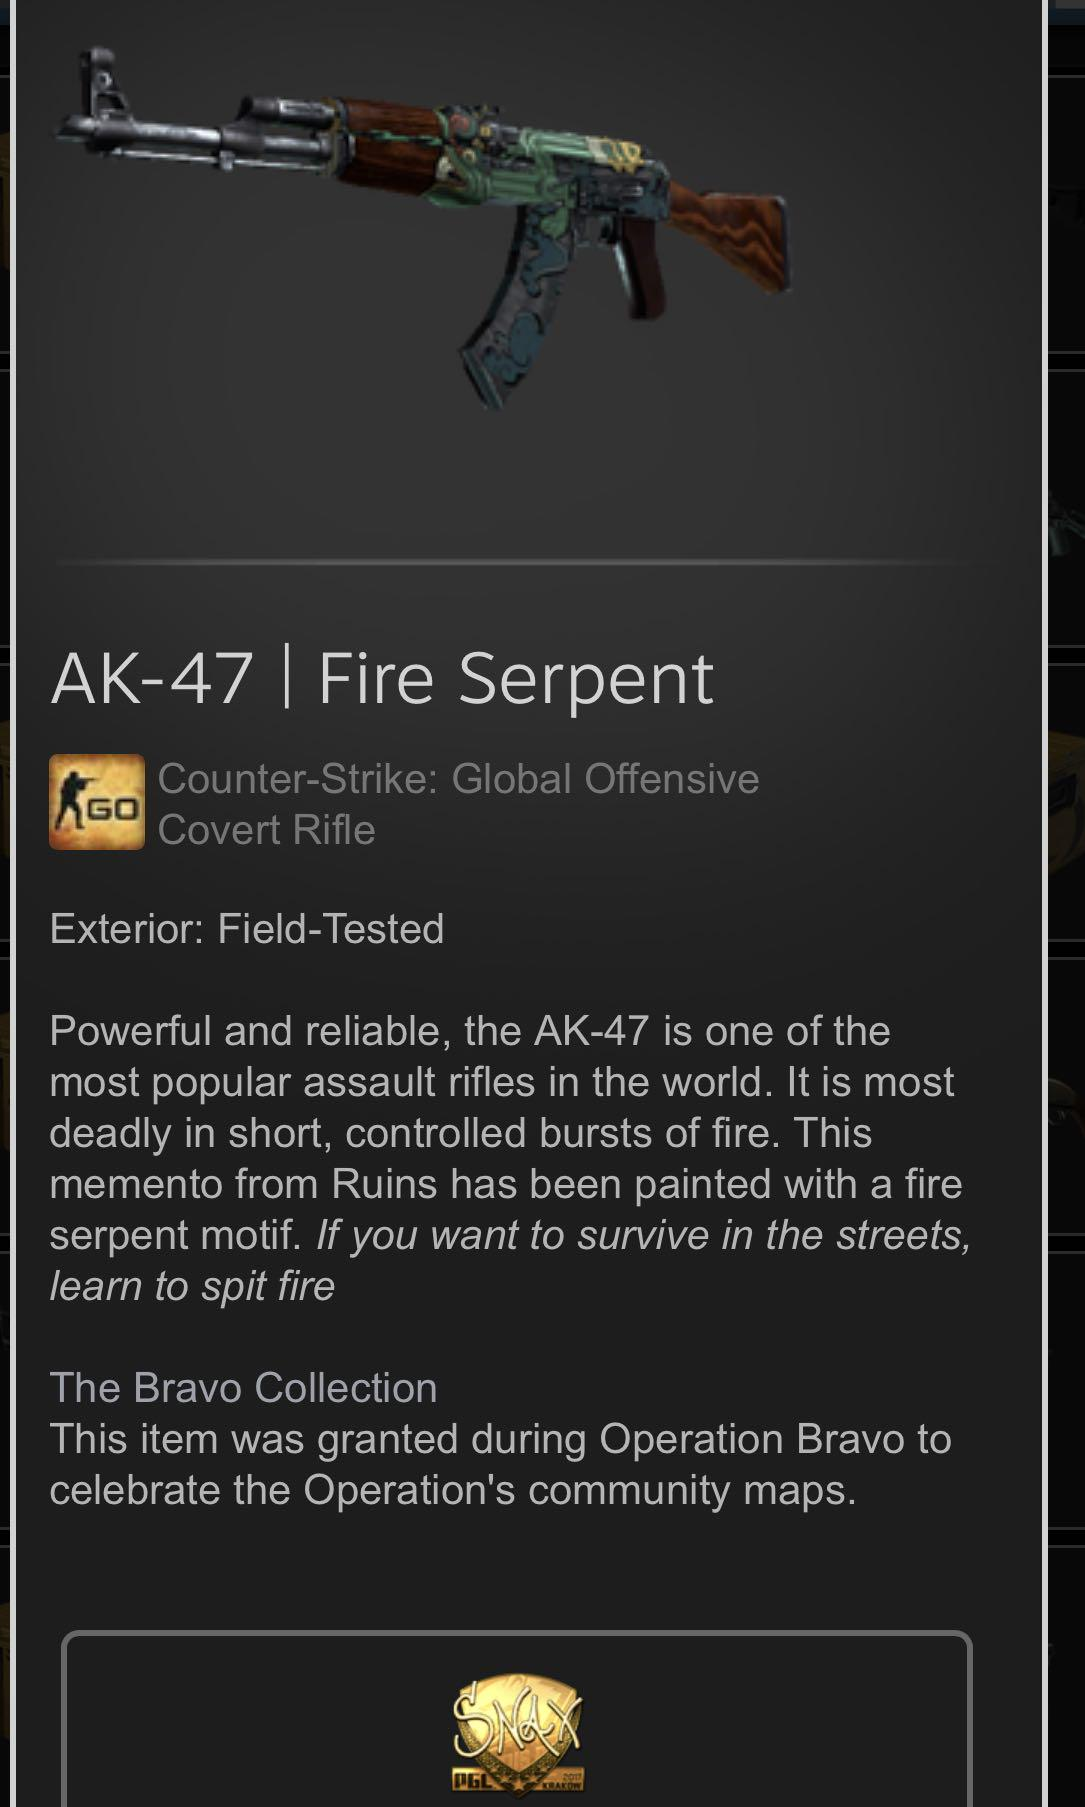 AK FIRE SERPENT CSGO, Toys & Games, Video Gaming, In-Game